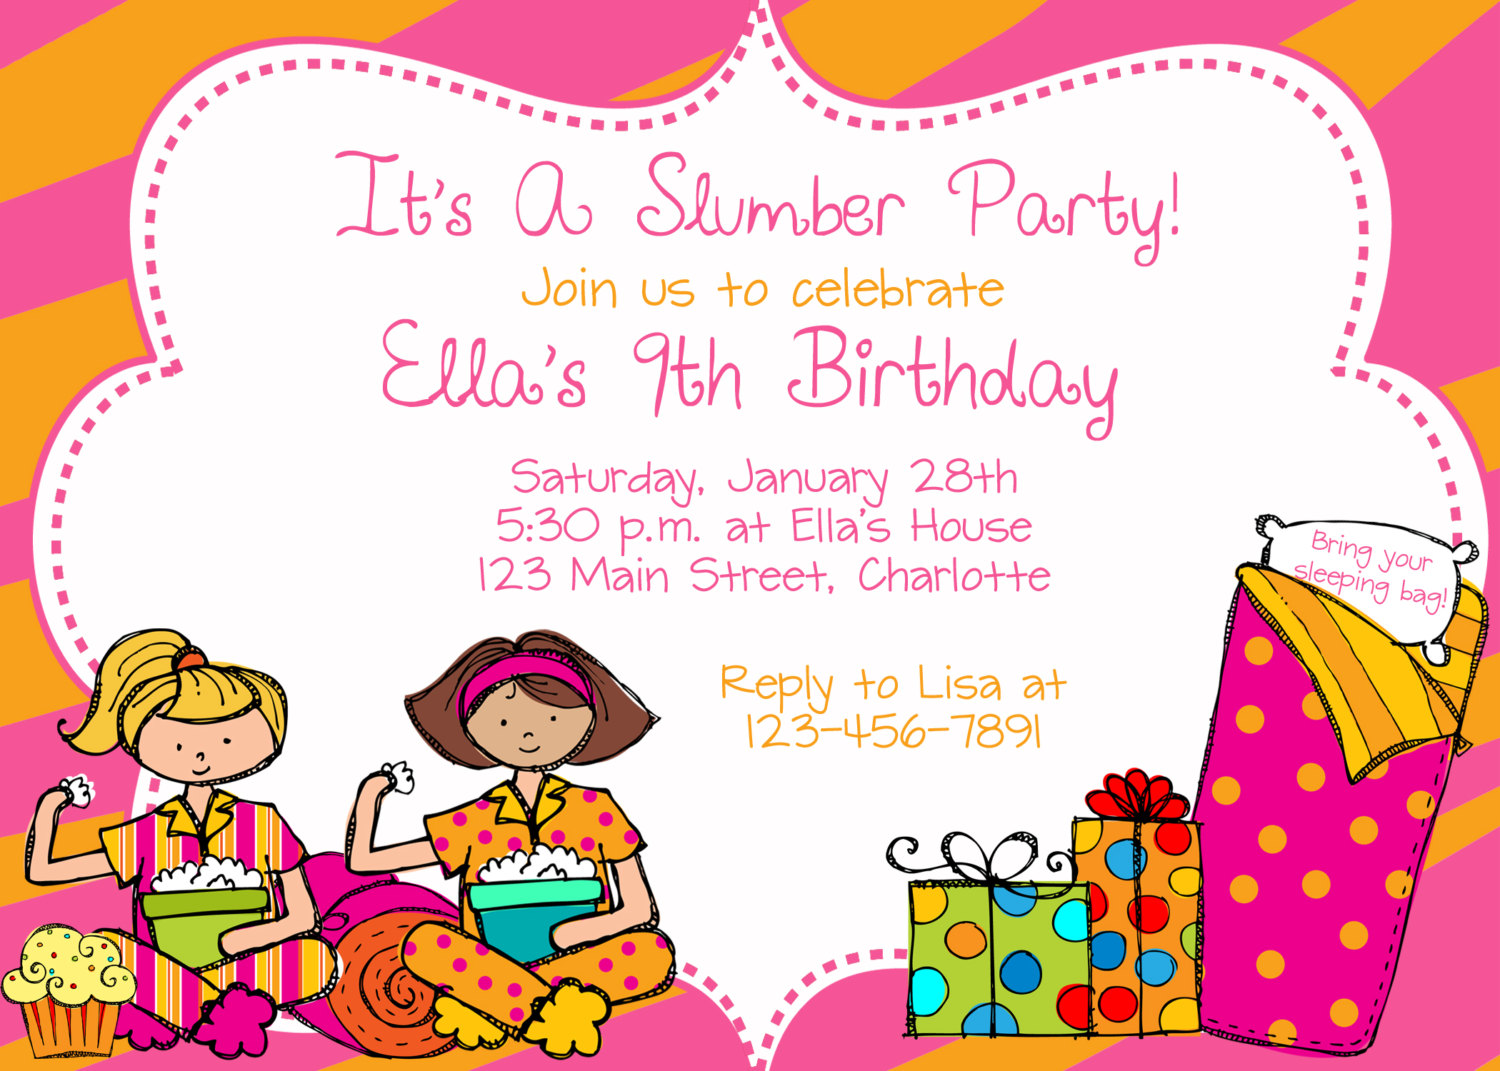 birthday dinner invitation sample ; sleepover-birthday-party-invitations-for-your-extraordinary-Party-Invitation-Templates-associated-with-beautiful-sight-using-a-exquisite-design-17